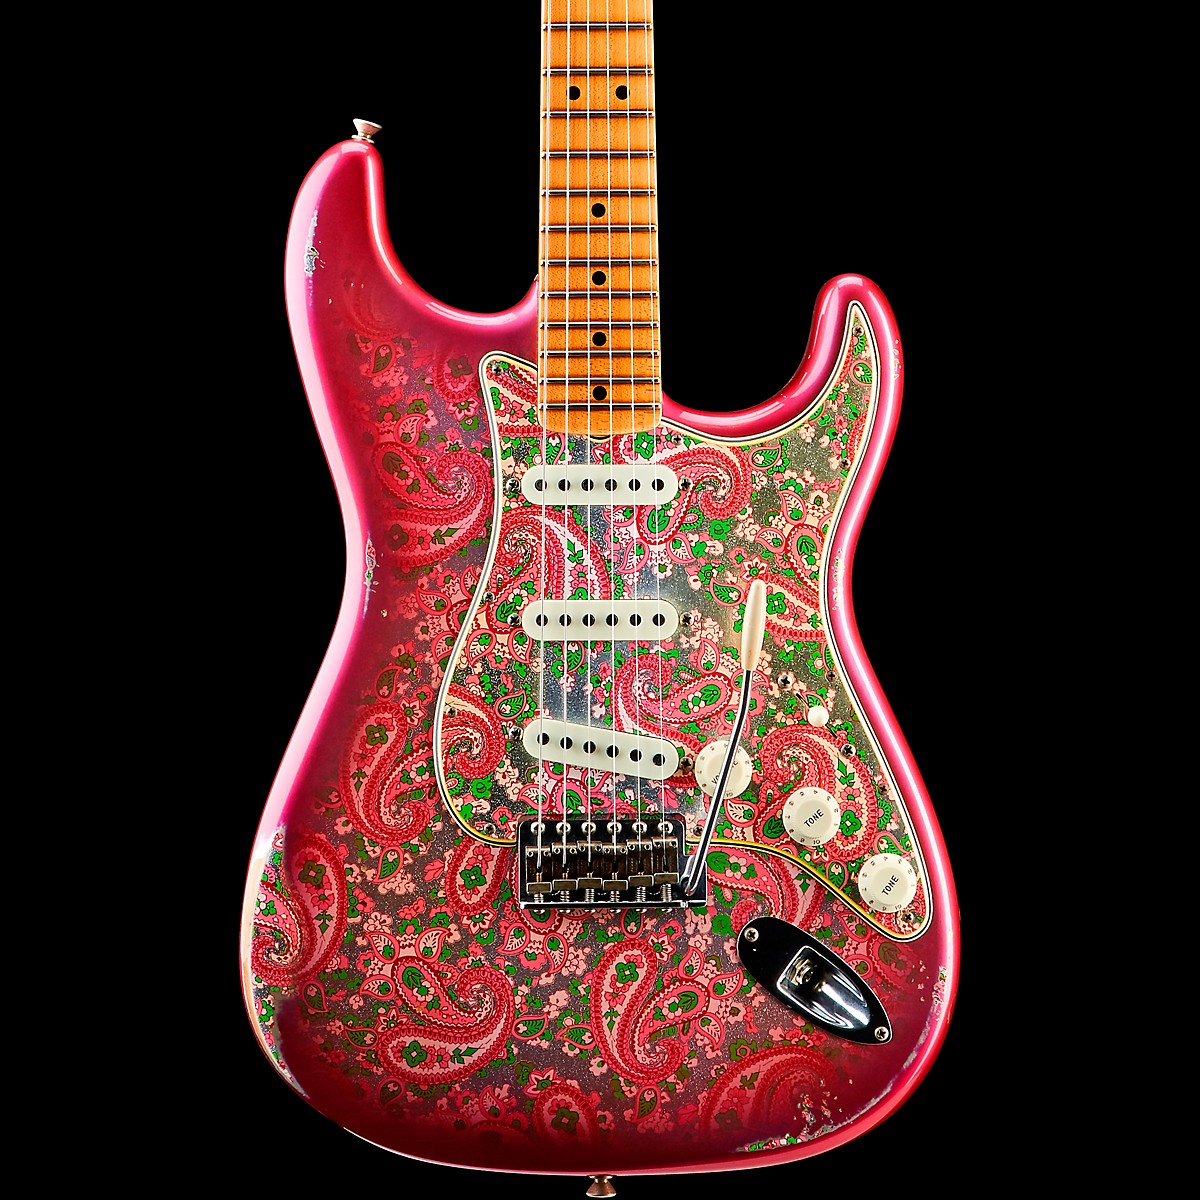 Fender Custom Shop 1968 Relic Stratocaster Limited-Edition Electric Guitar